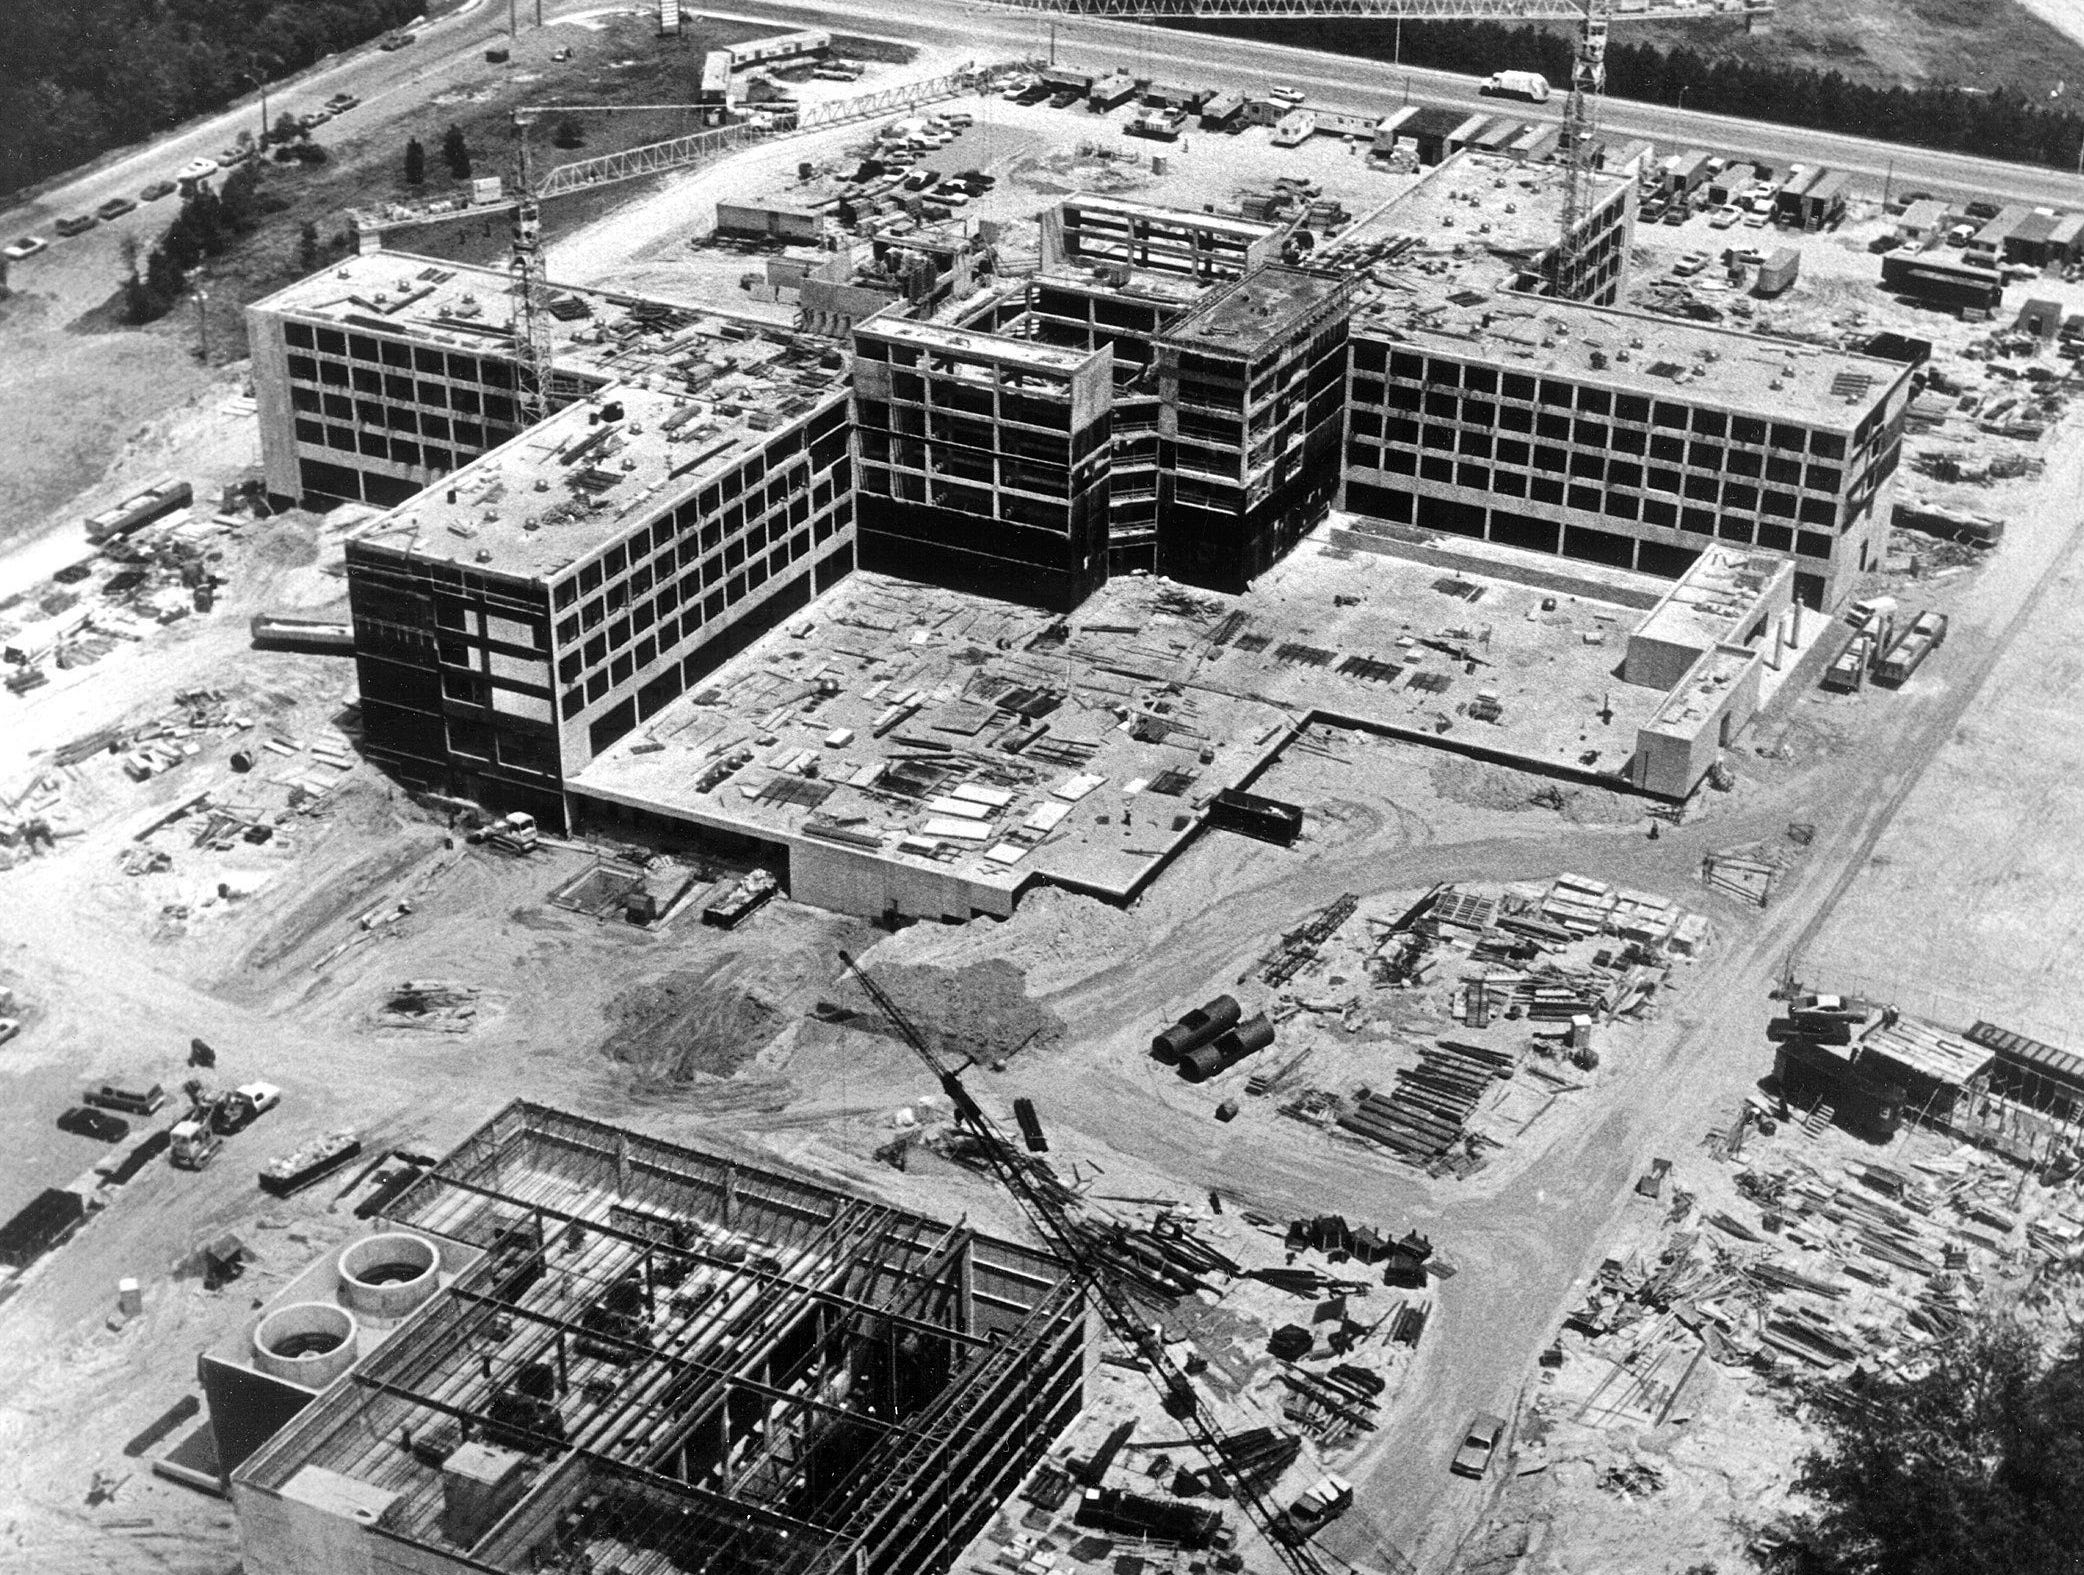 Baptist Memorial Hospital - Memphis on Walnut Grove Road in East Memphis was under construction on 25 May 1978. Christian Brothers High School is located at the top of the photo. Walnut Grove Road is located between the hospital and the CBHS baseball diamond at top of this photo, which looks from South to North.